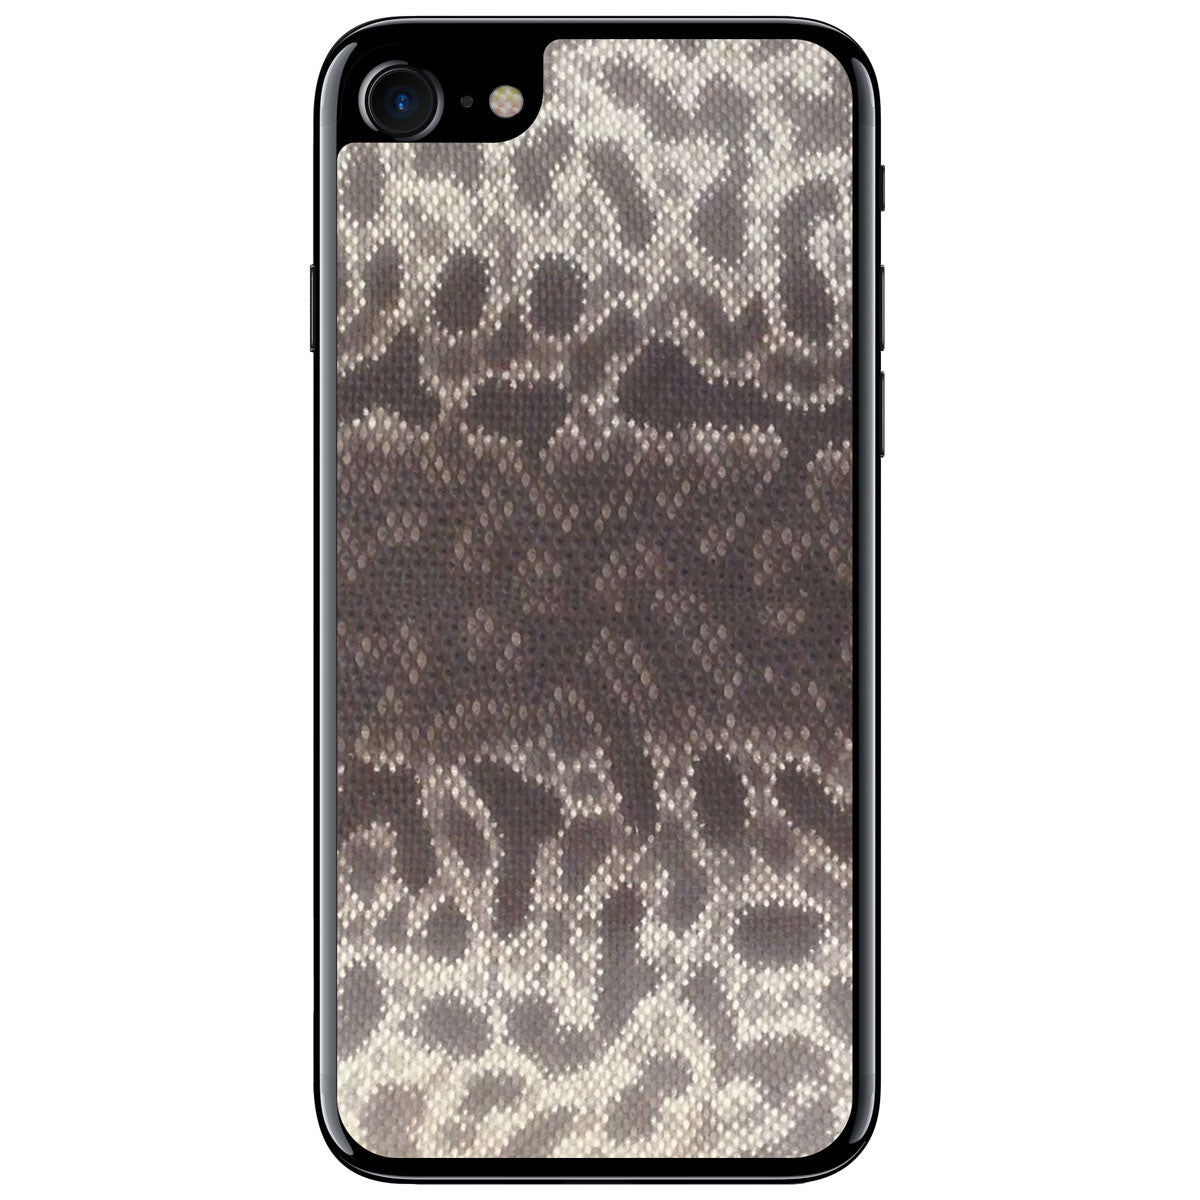 Karung Snake iPhone 7 Leather Skin